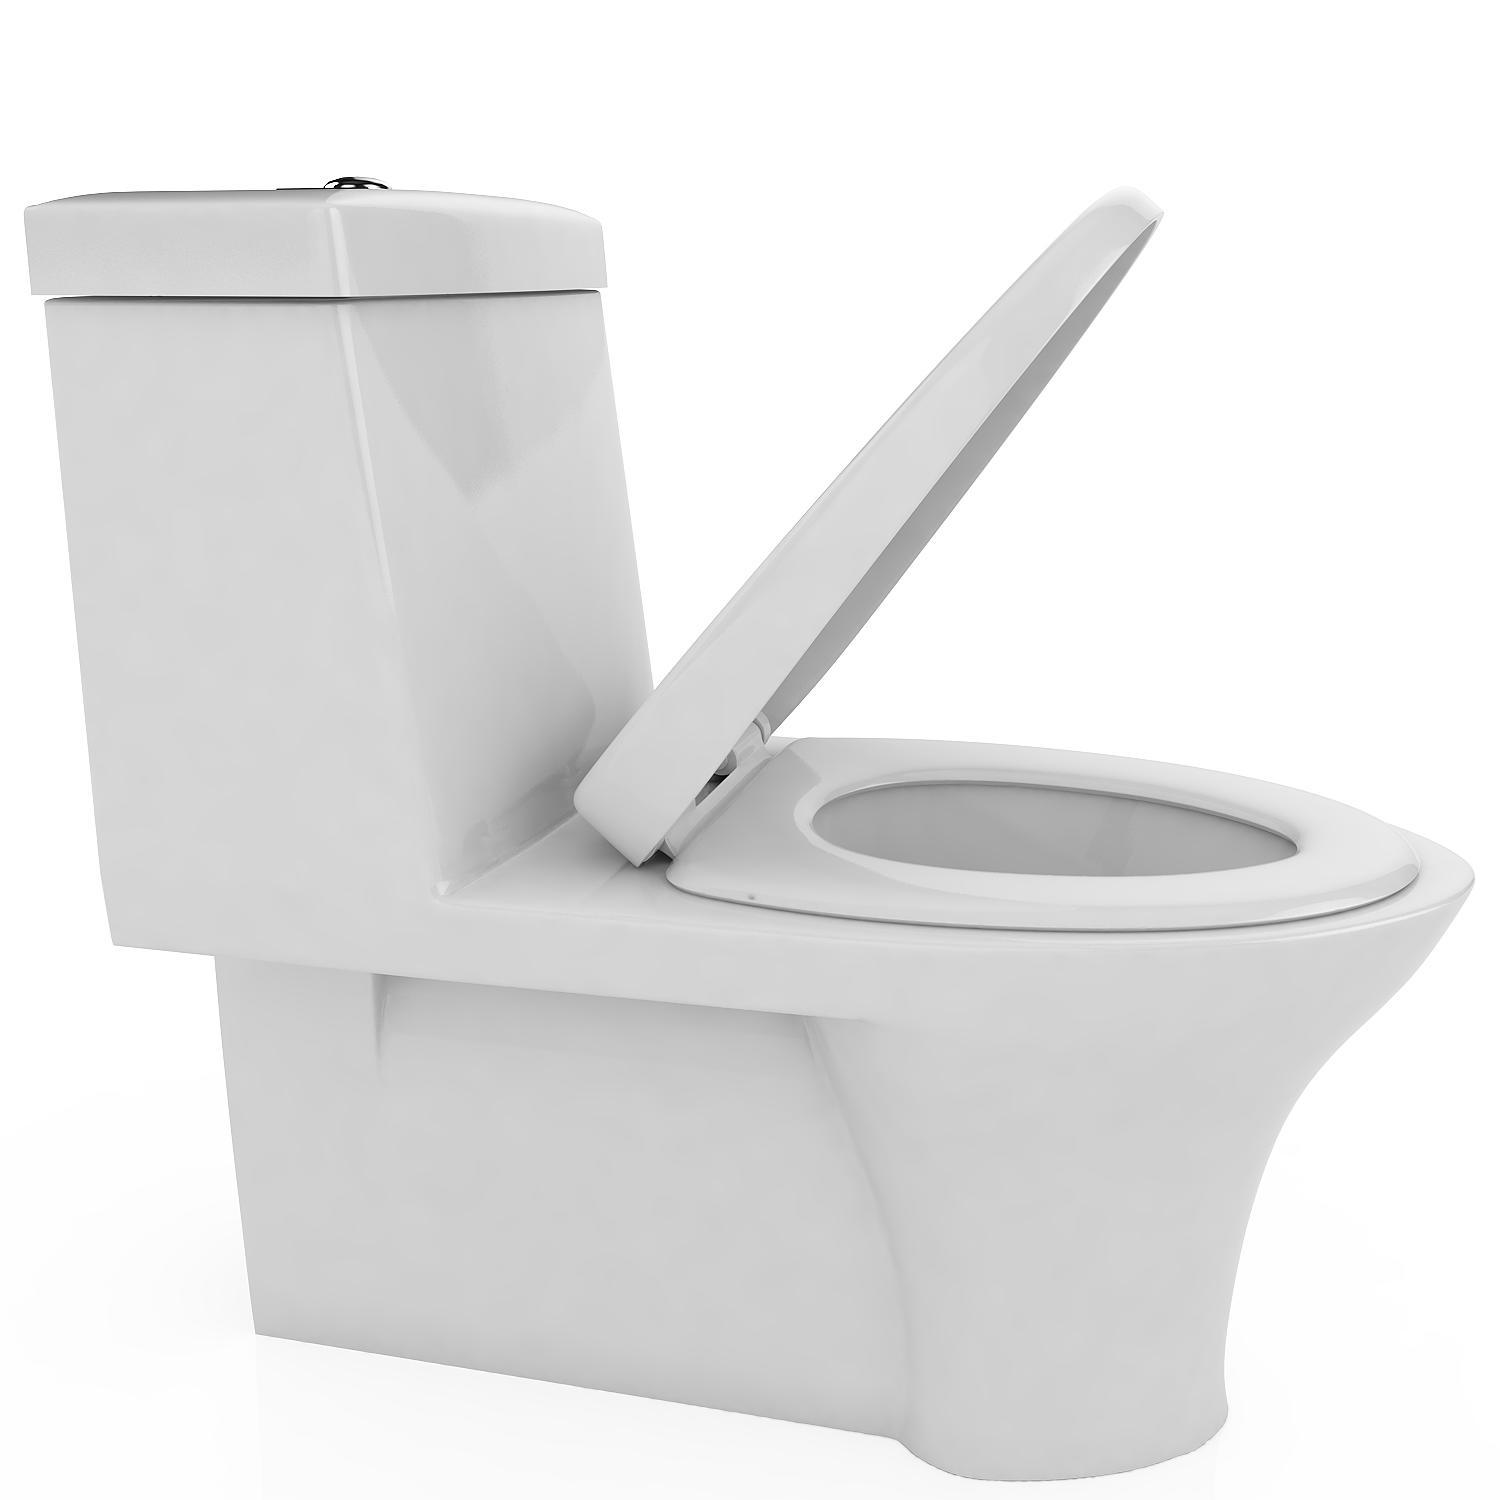 Toilet Seat with Cover U/V/O Shape Soft Close Quick Release Easy Cleaning 2